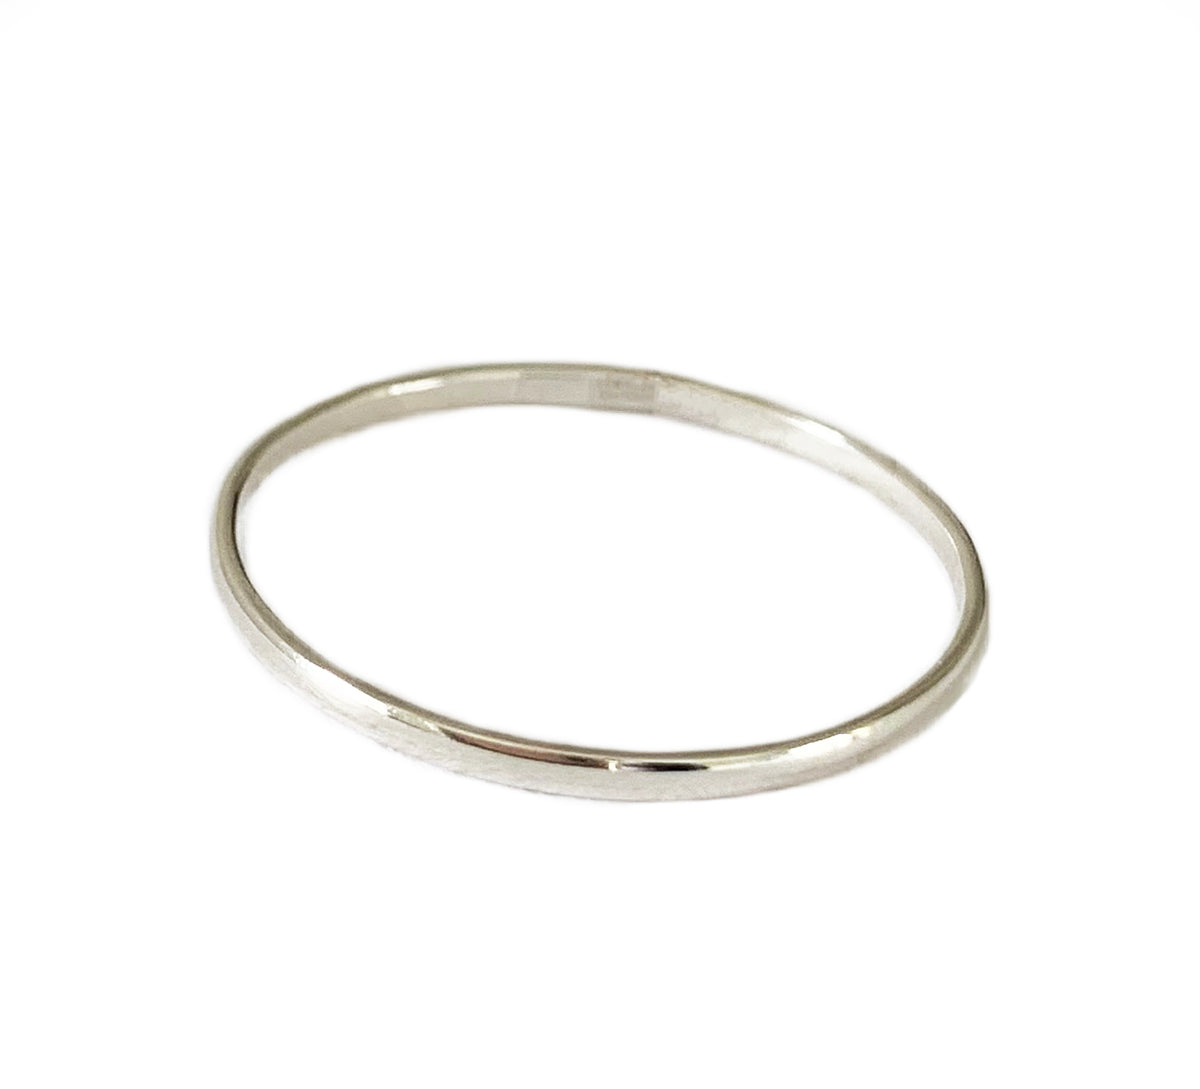 A unisex 1mm Sterling Thumb Ring